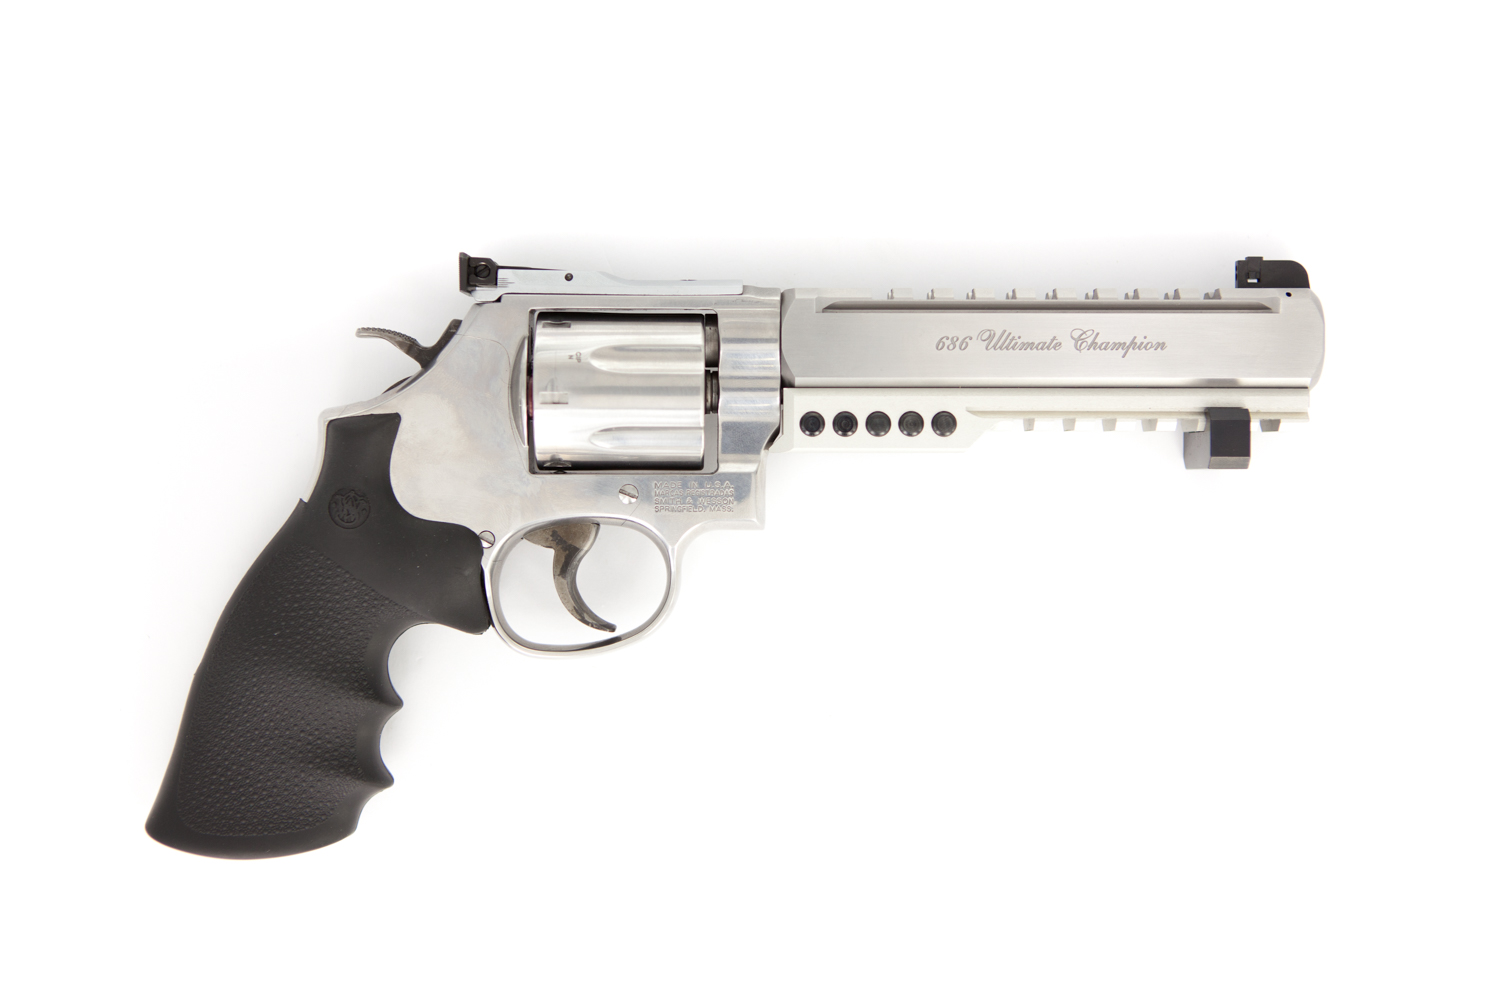 S&W 686 Ultimate Champion .357